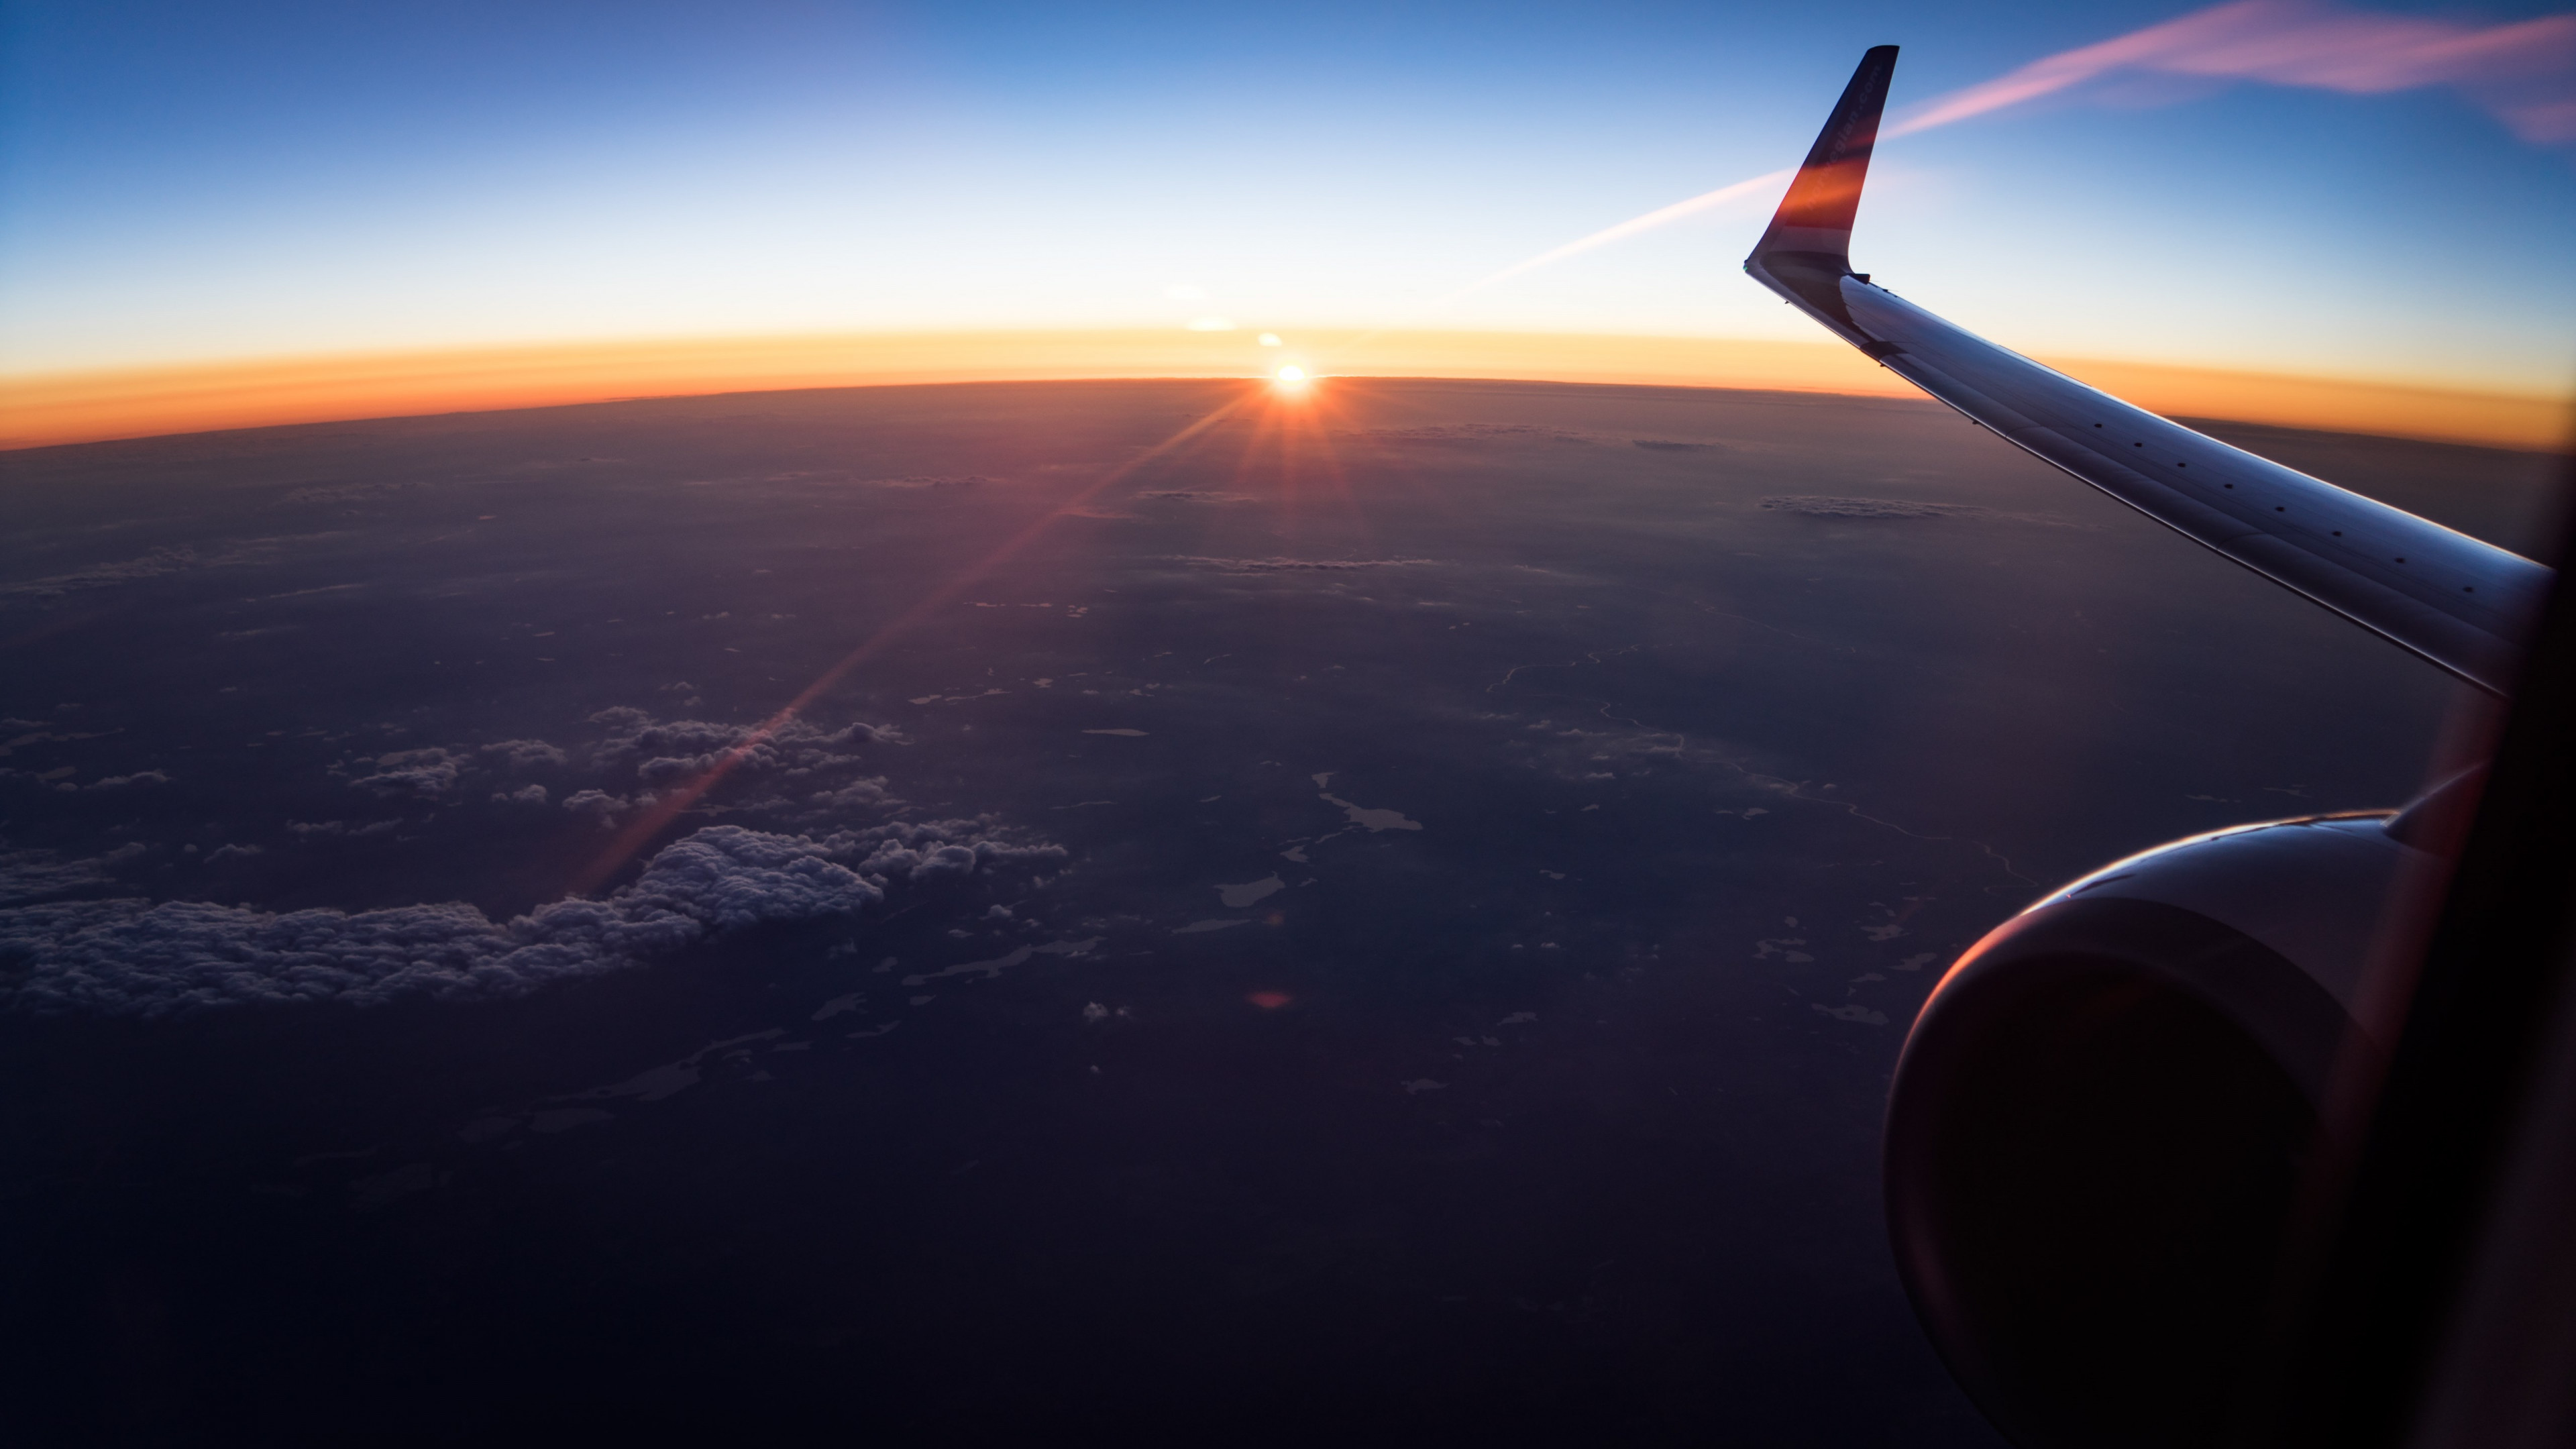 In the plane watching the sunset wallpaper 3840x2160